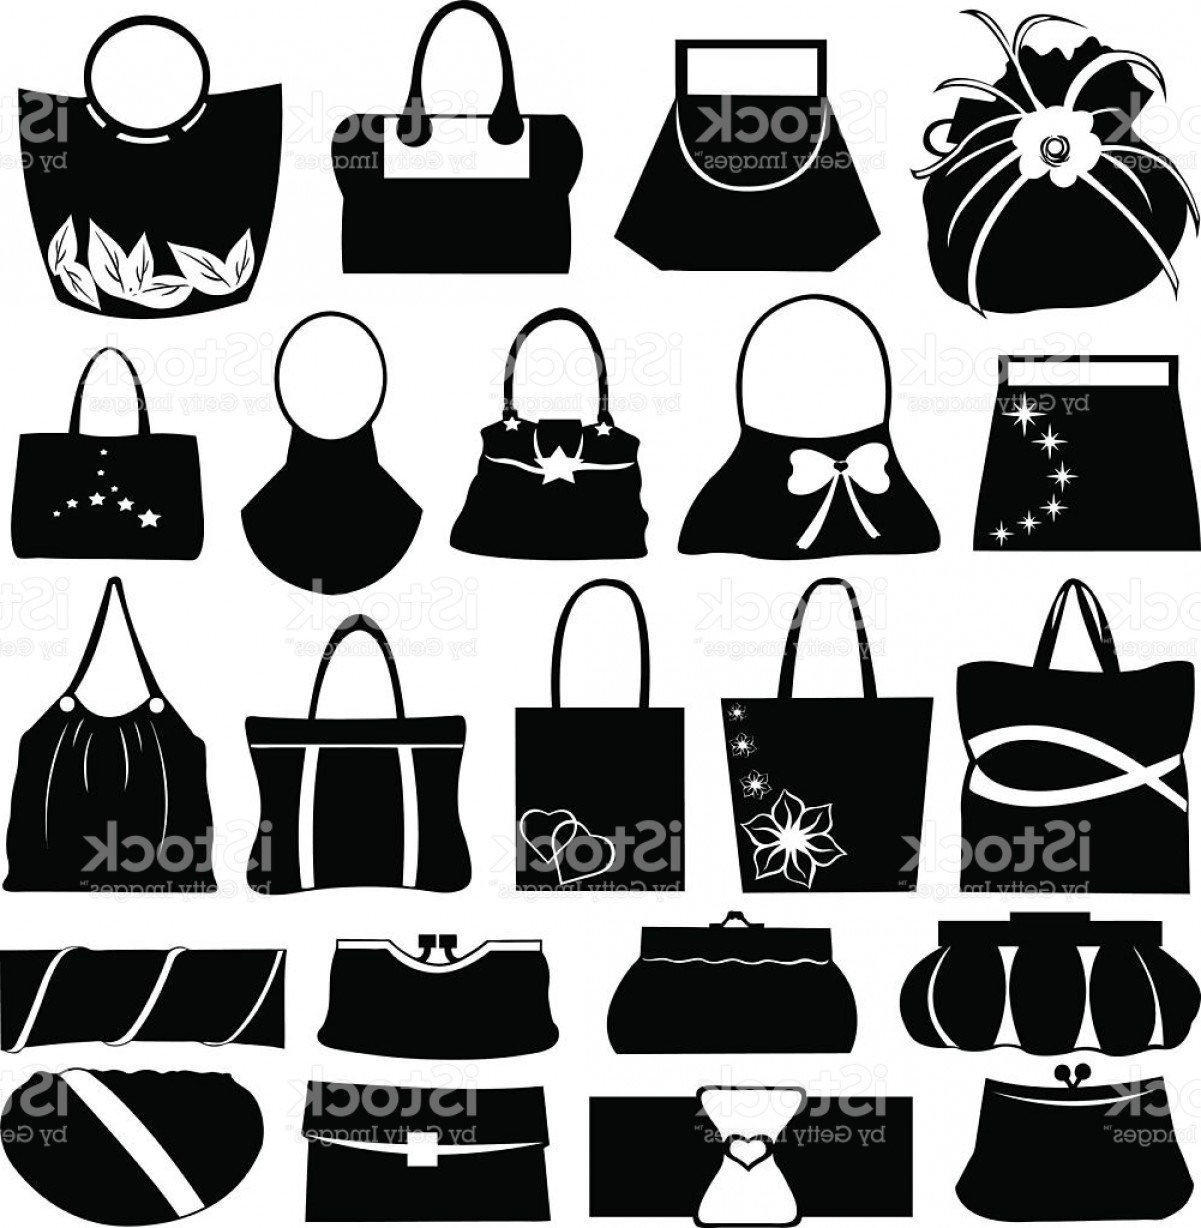 Purse Vector Art: Different Styles Of Handbags And Purses Gm